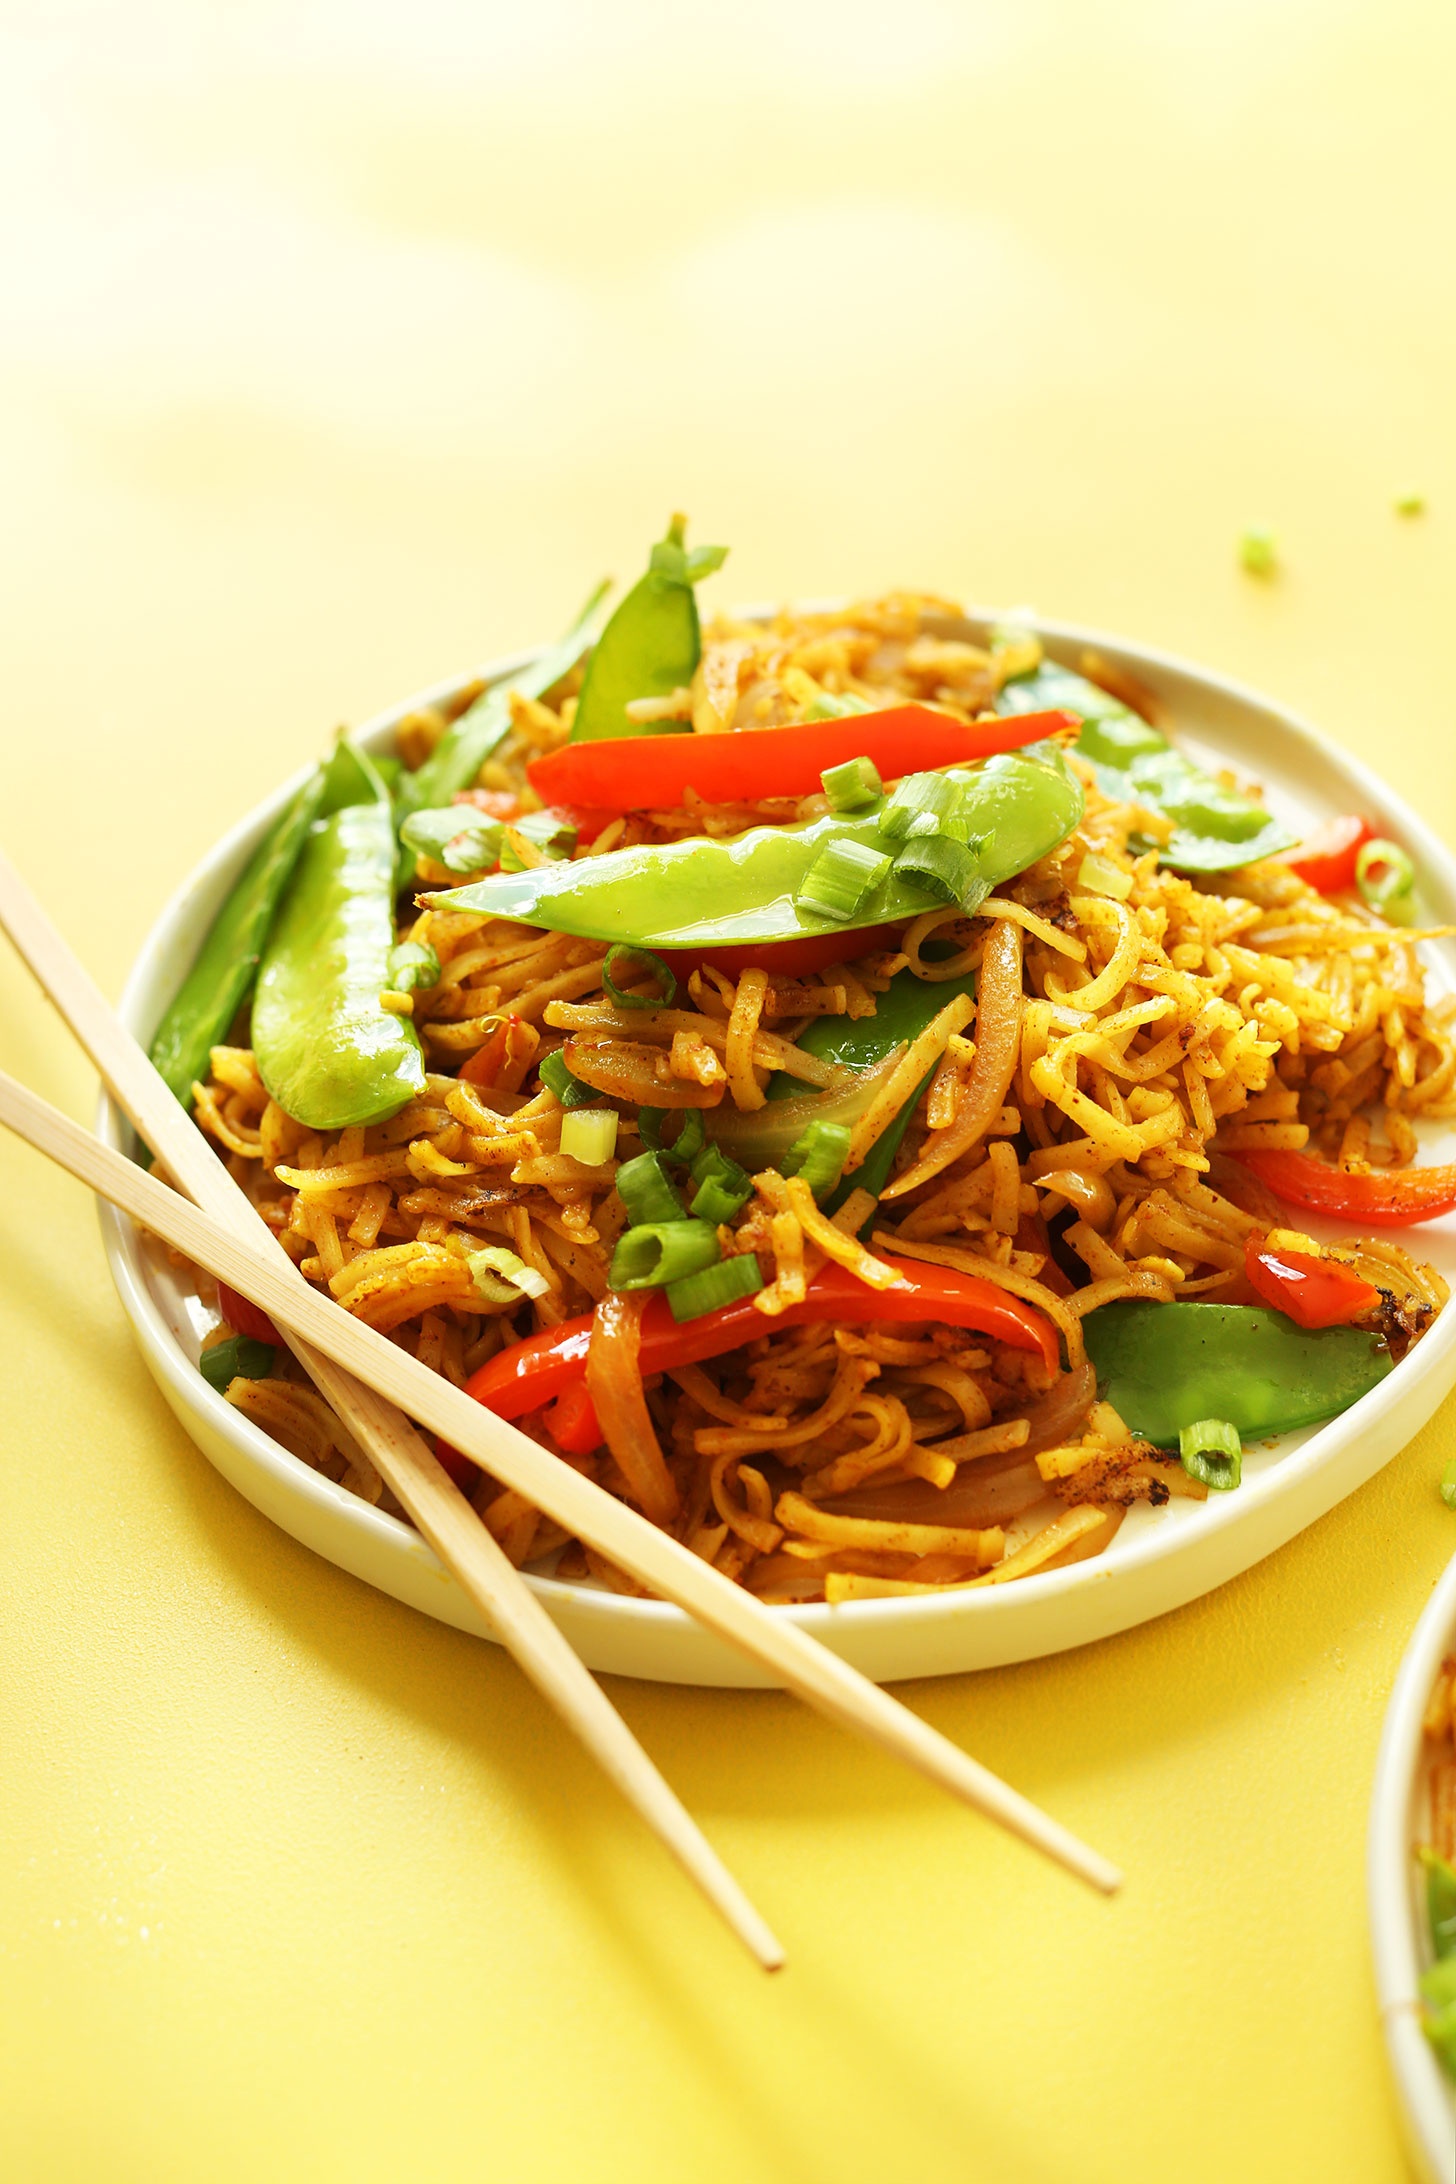 Plate of our Singapore Noodles recipe for a simple gluten-free vegan dinner